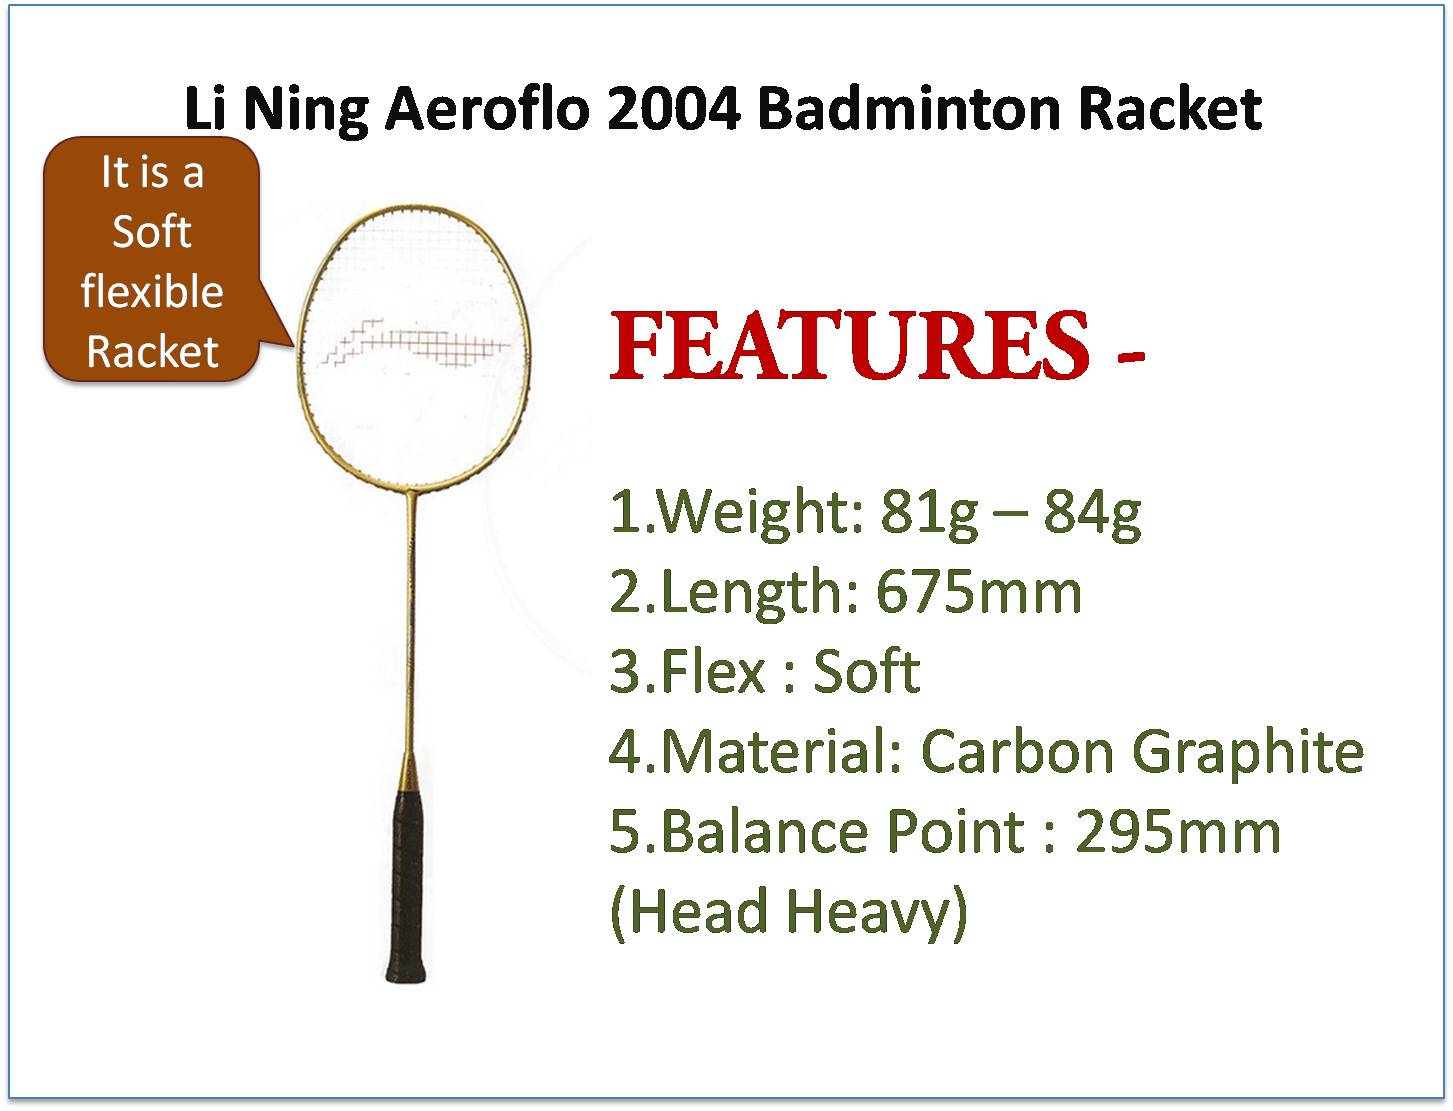 Lining aeroflow 2004 badminton racke on 20-Jun-15t